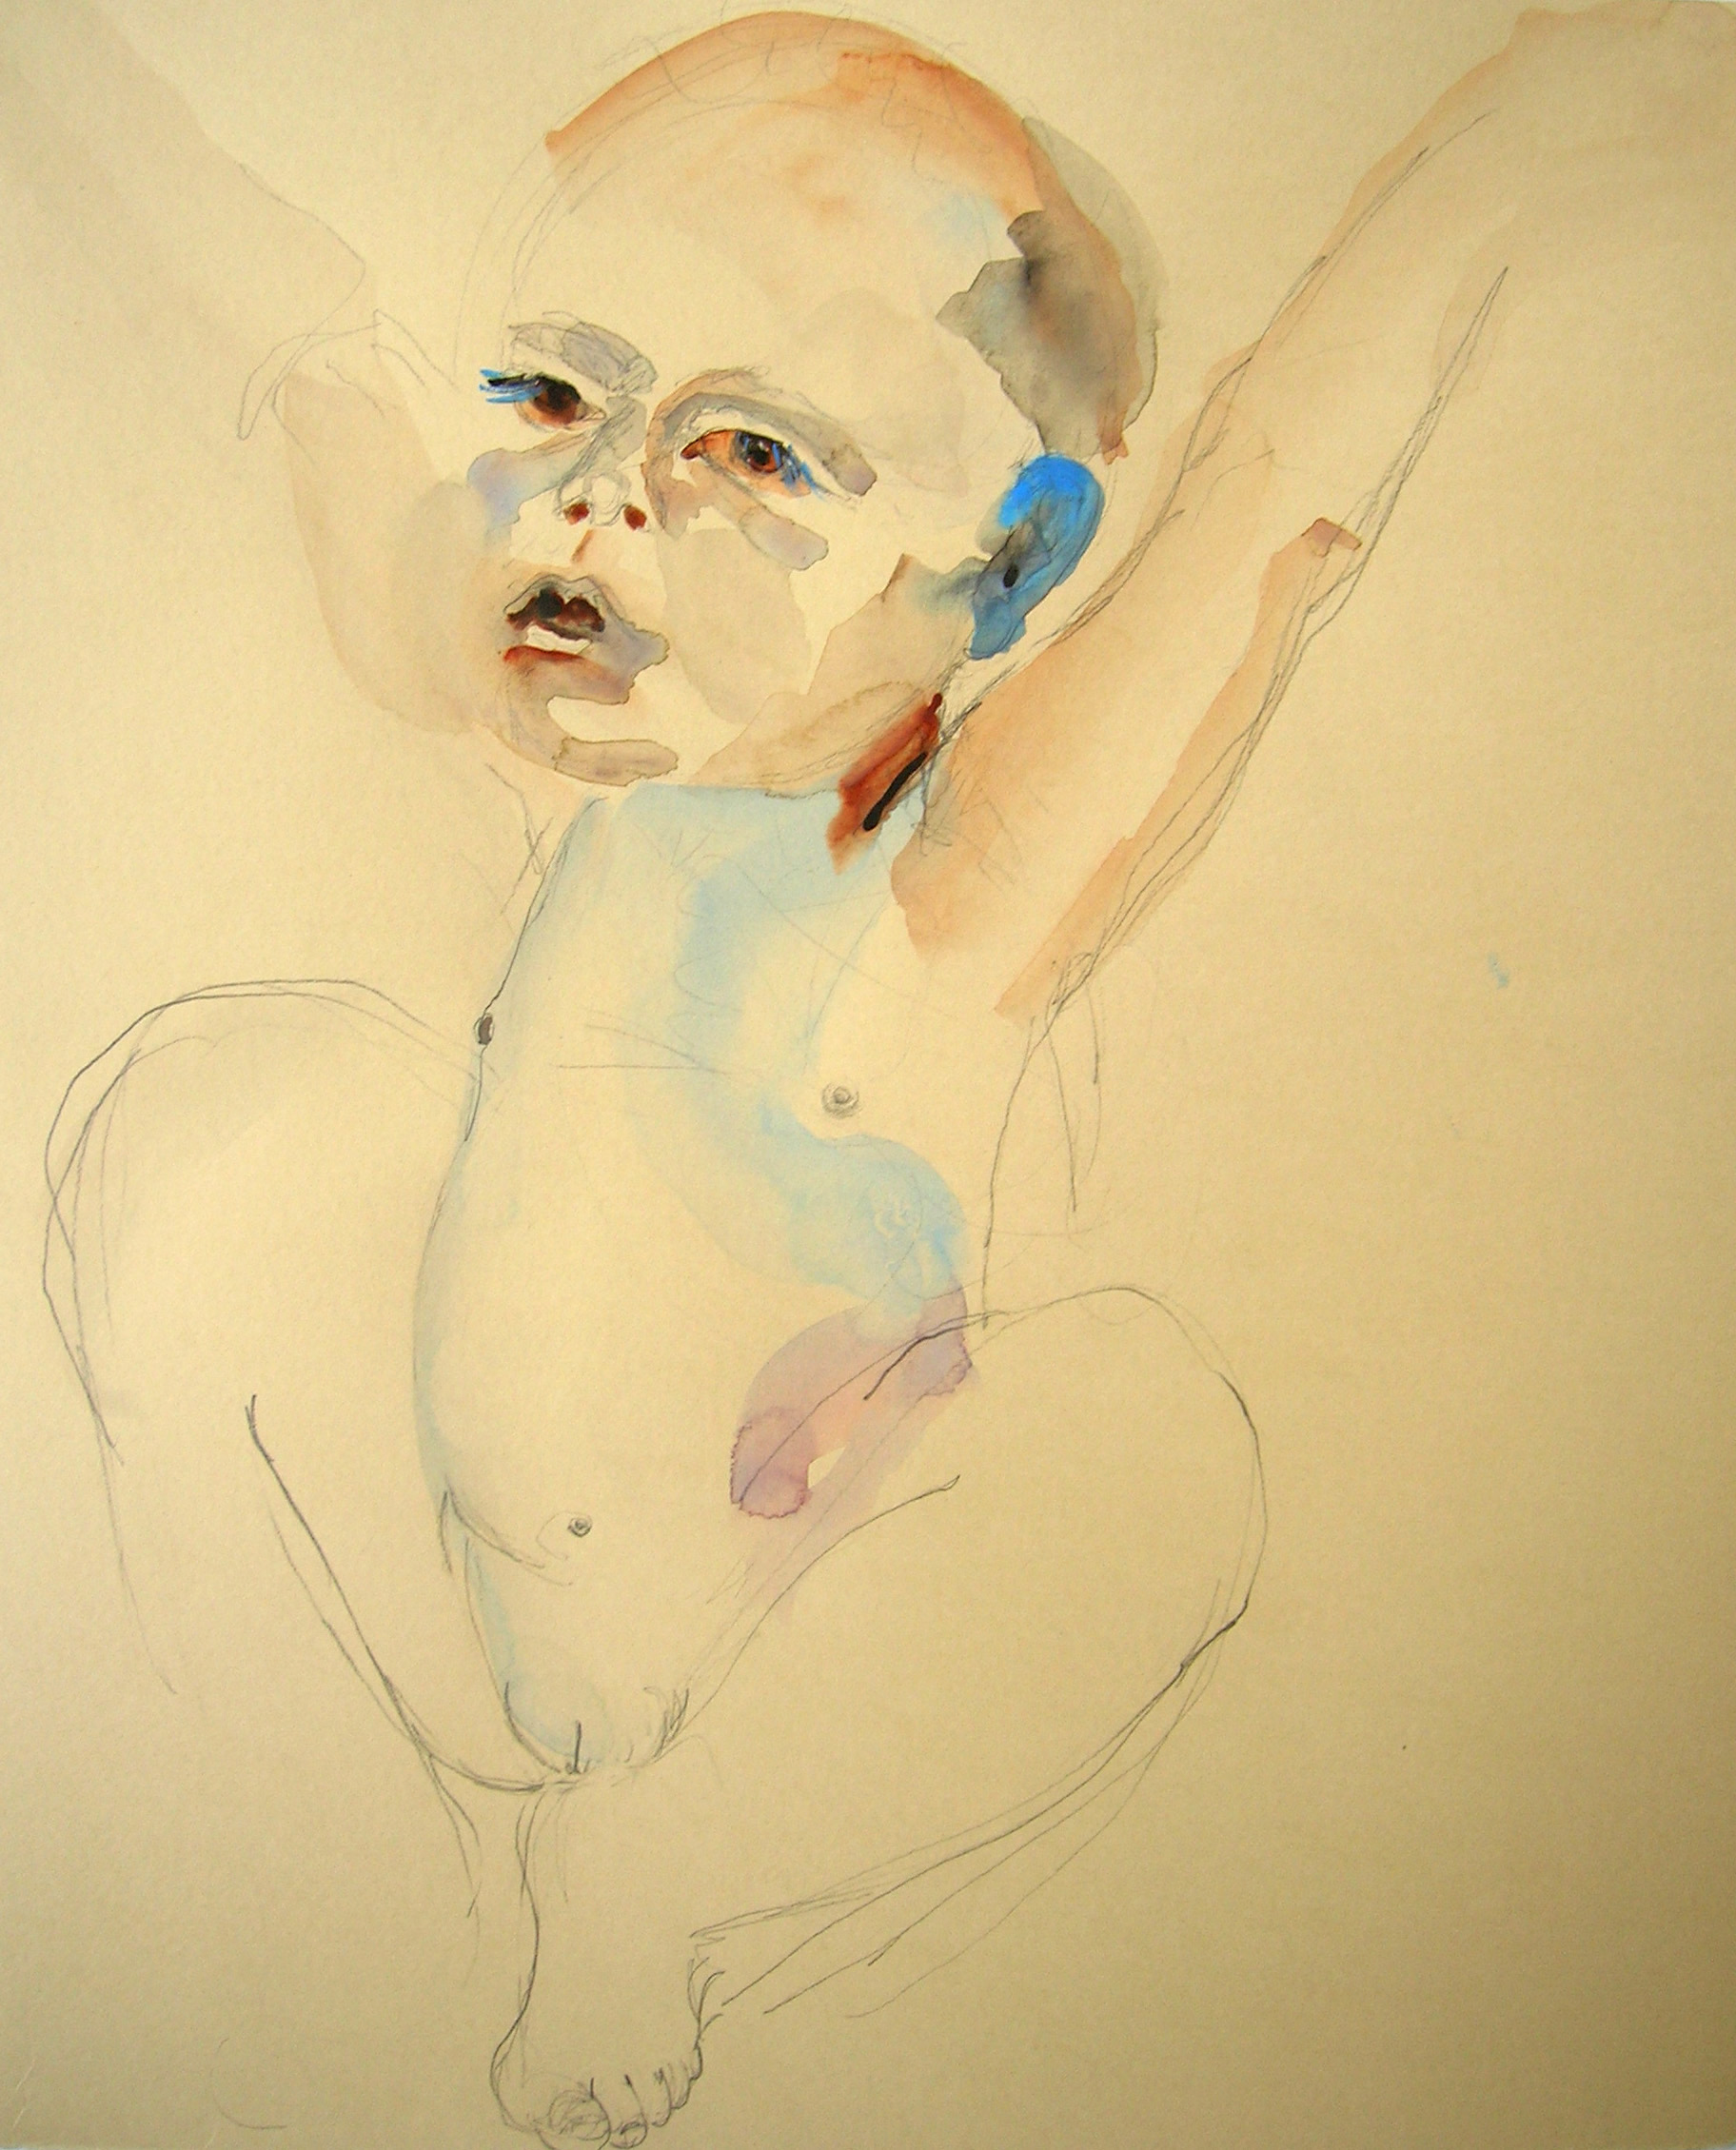 Sentencia, 2007, Graphite and watercolor on paper, 14 X 13 in.